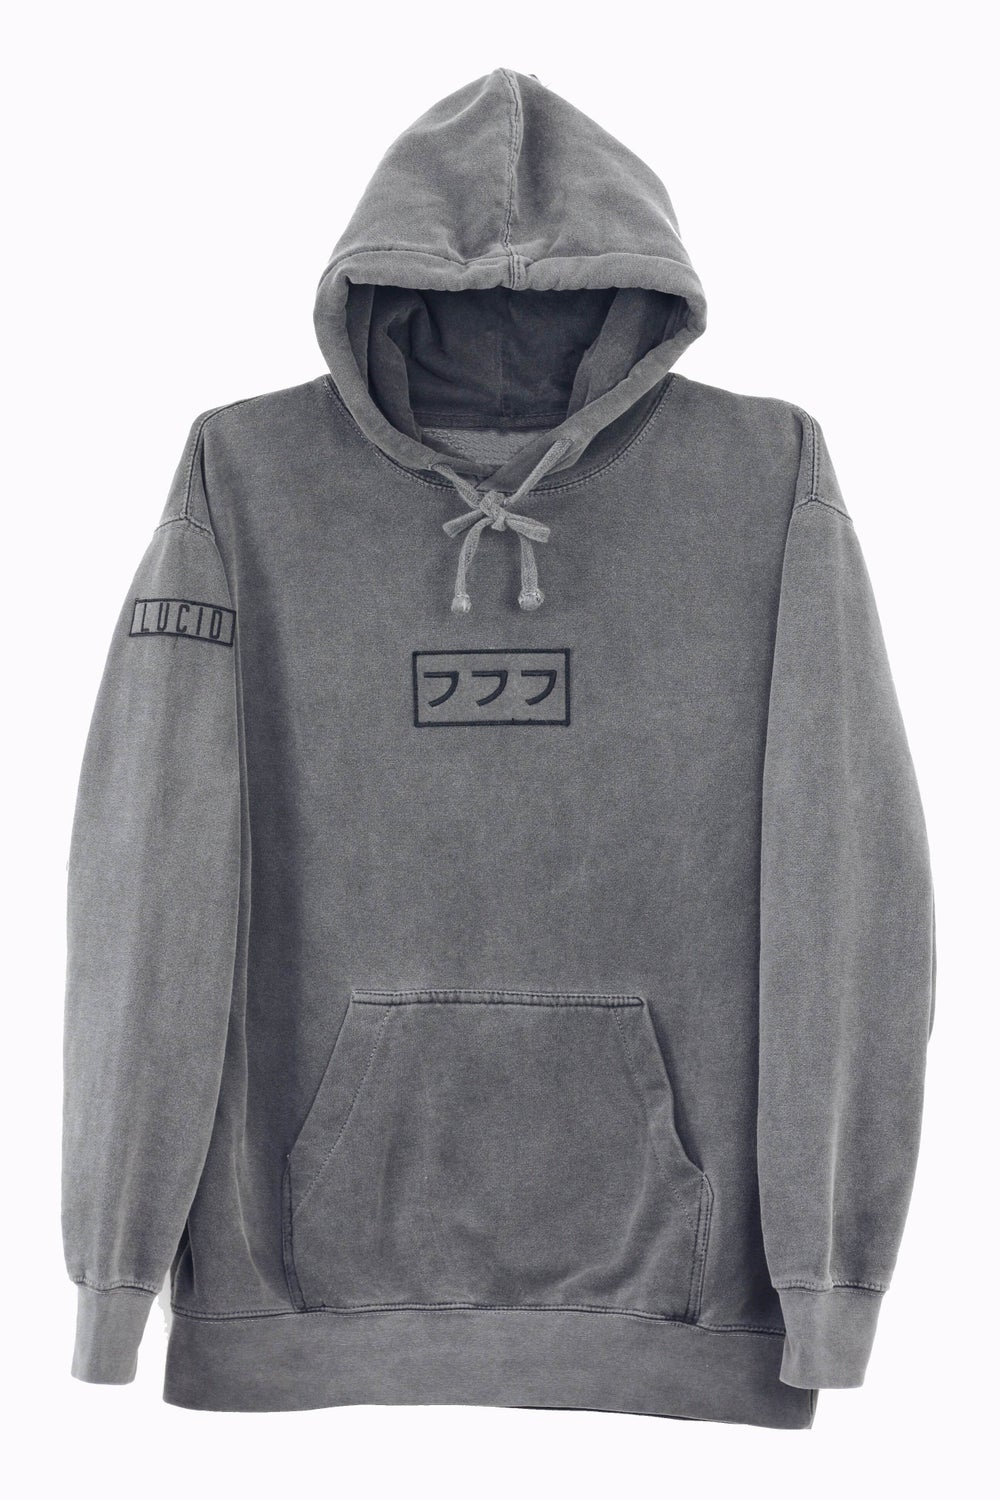 Image of lucid logo hoodie vol. II  [pepper]